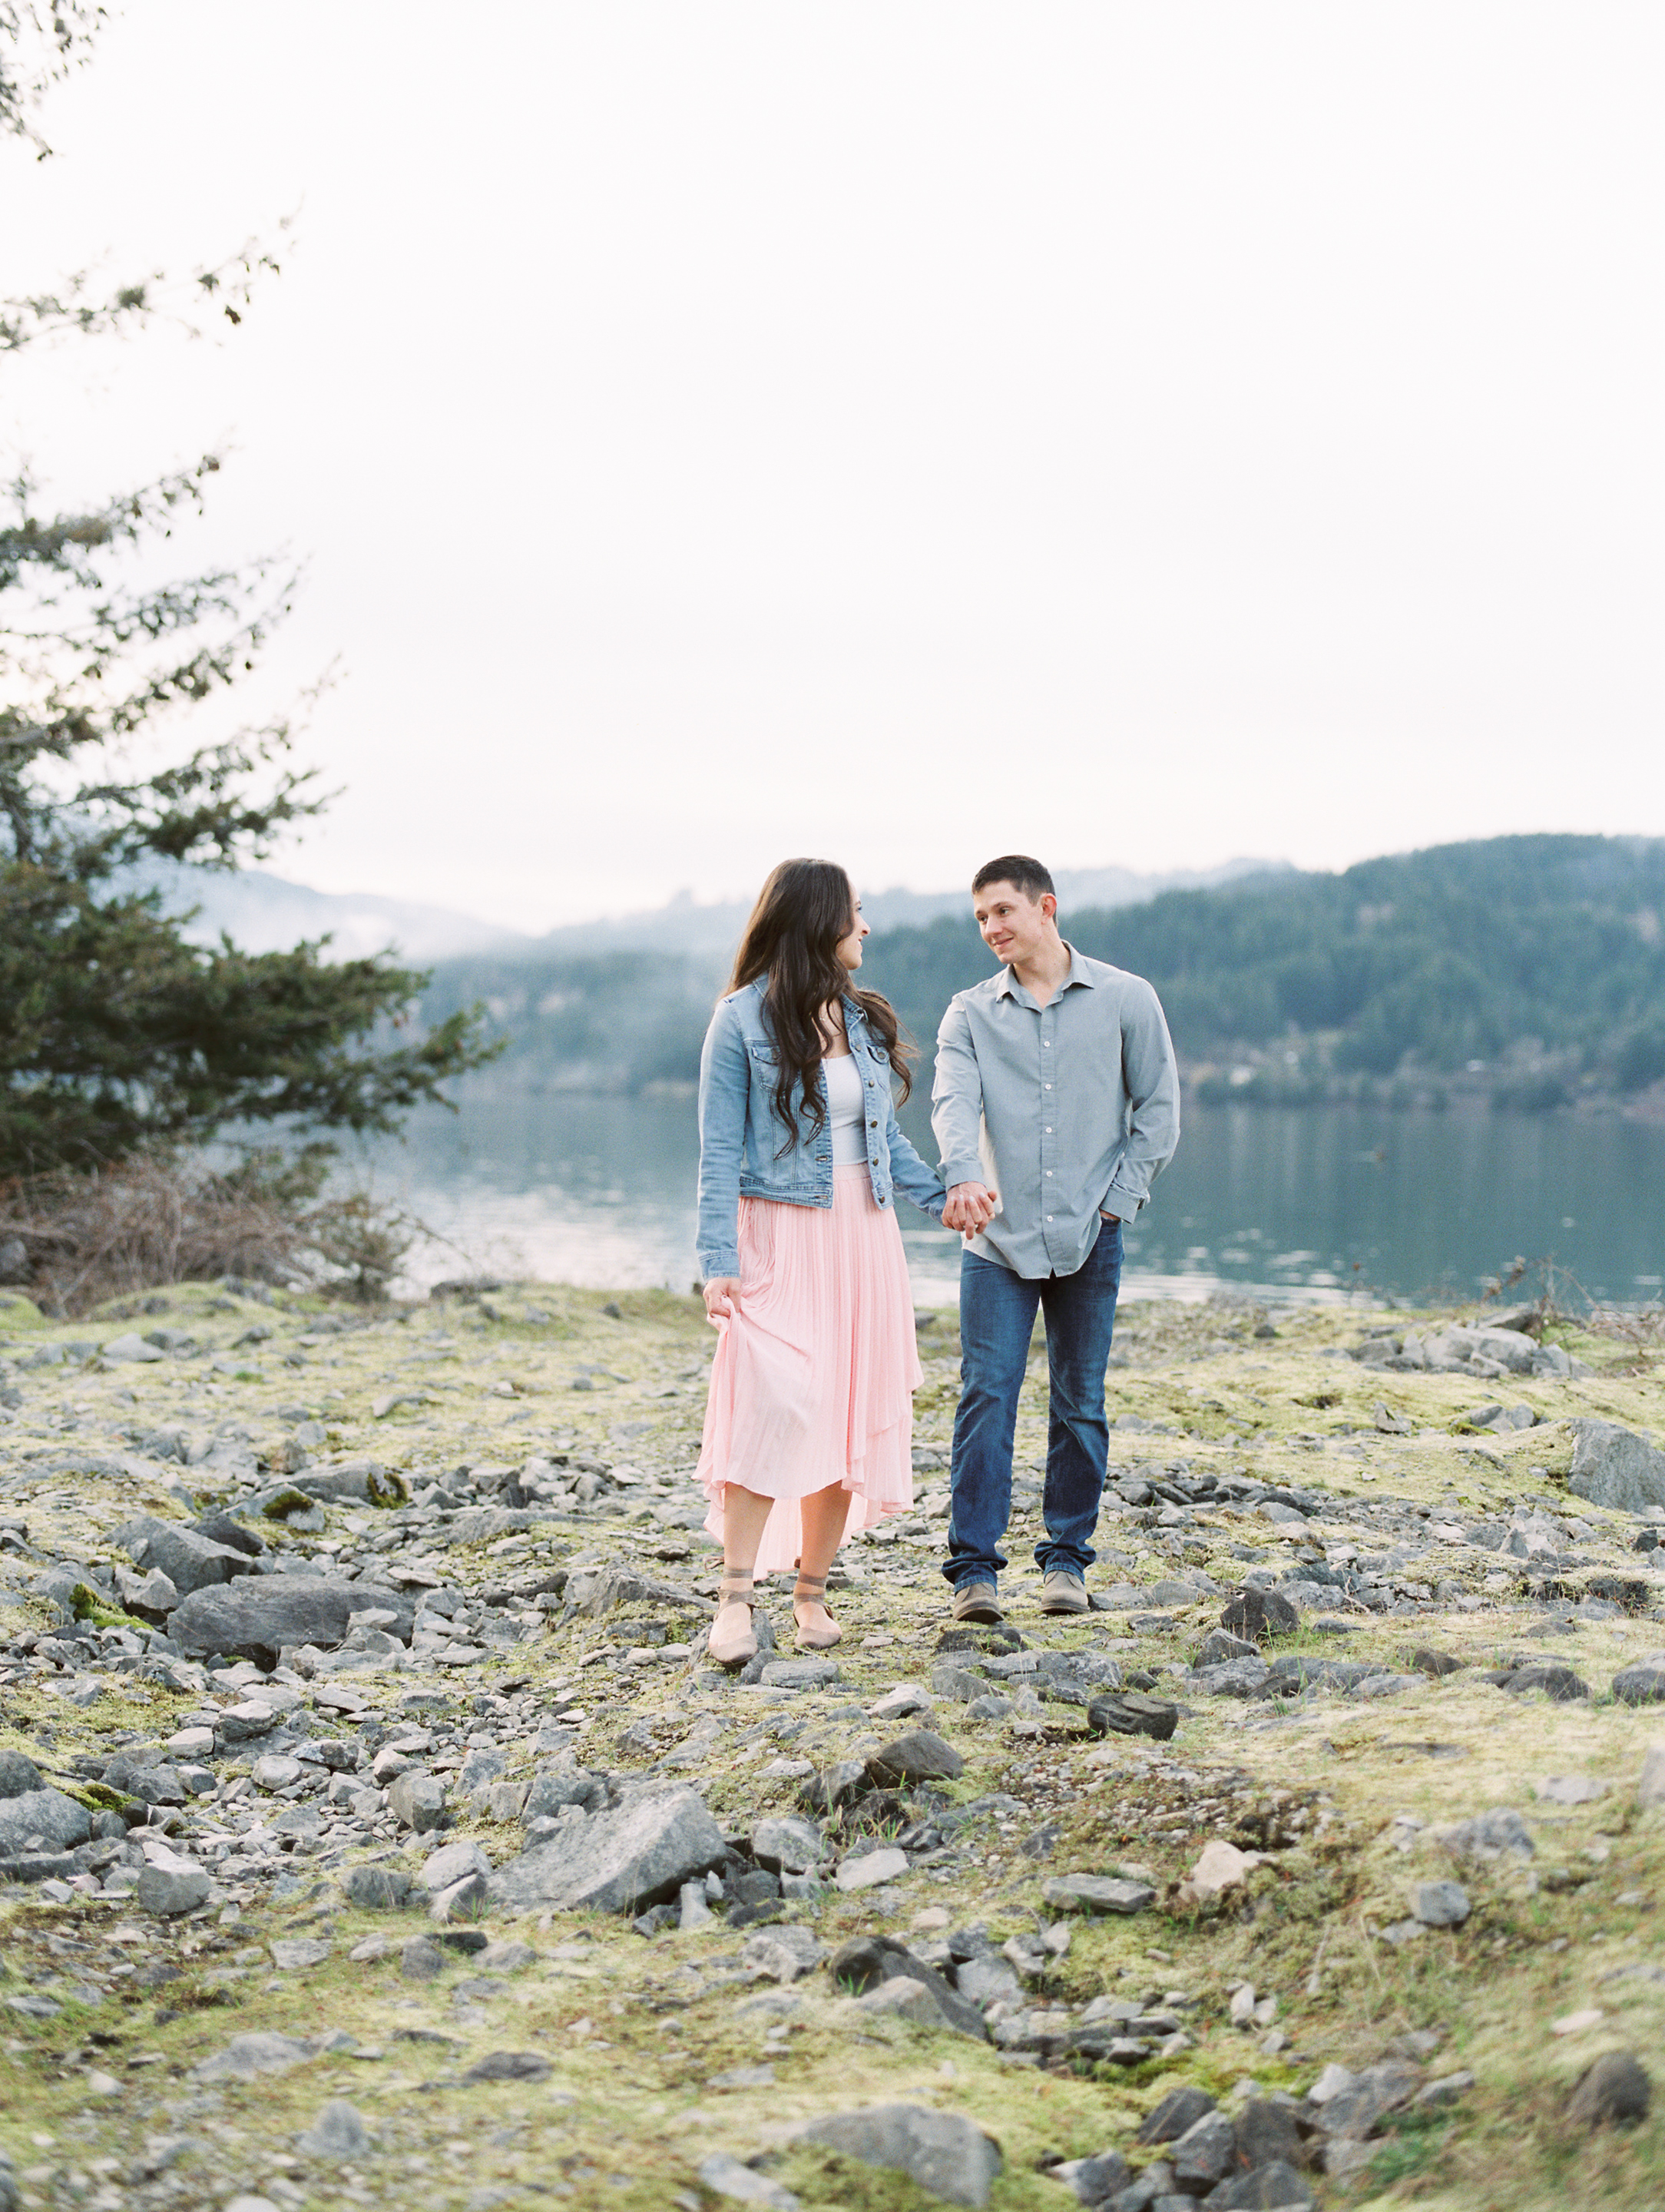 Jessica-and-Justin-Engagement-Columbia-River-Gorge-42.jpg